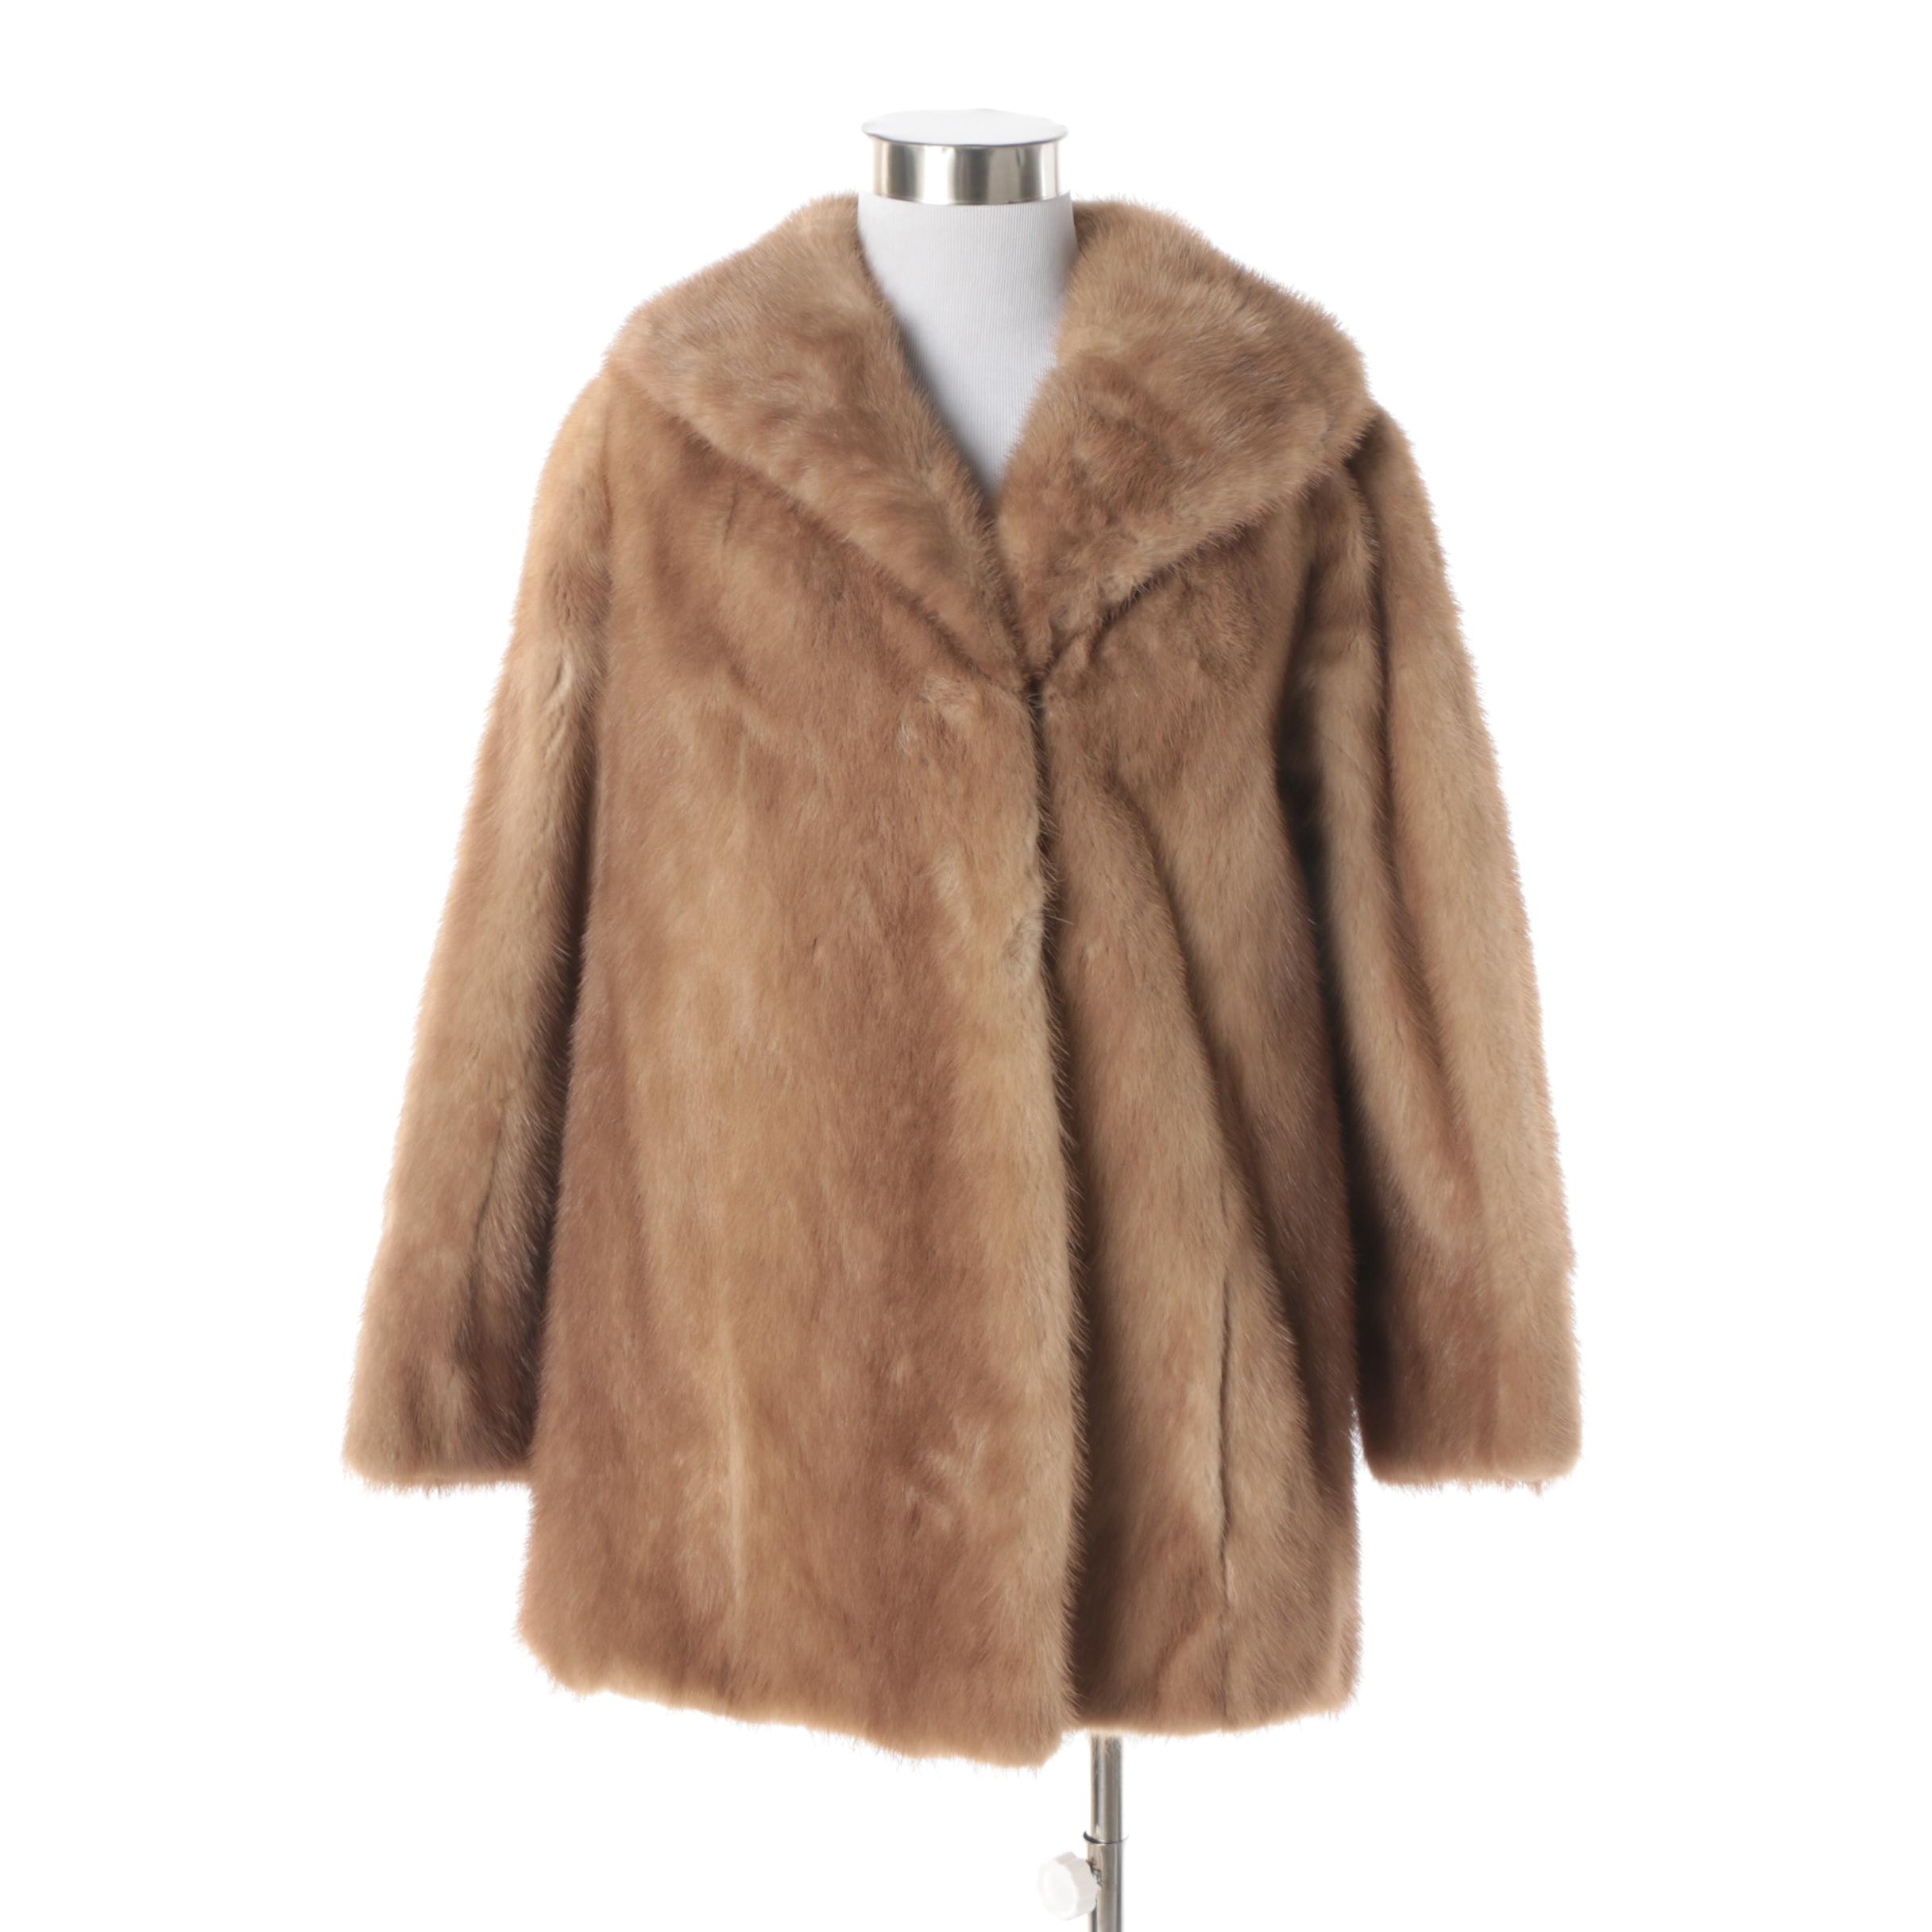 Women's Vintage William A. Lewis Mink Fur Coat